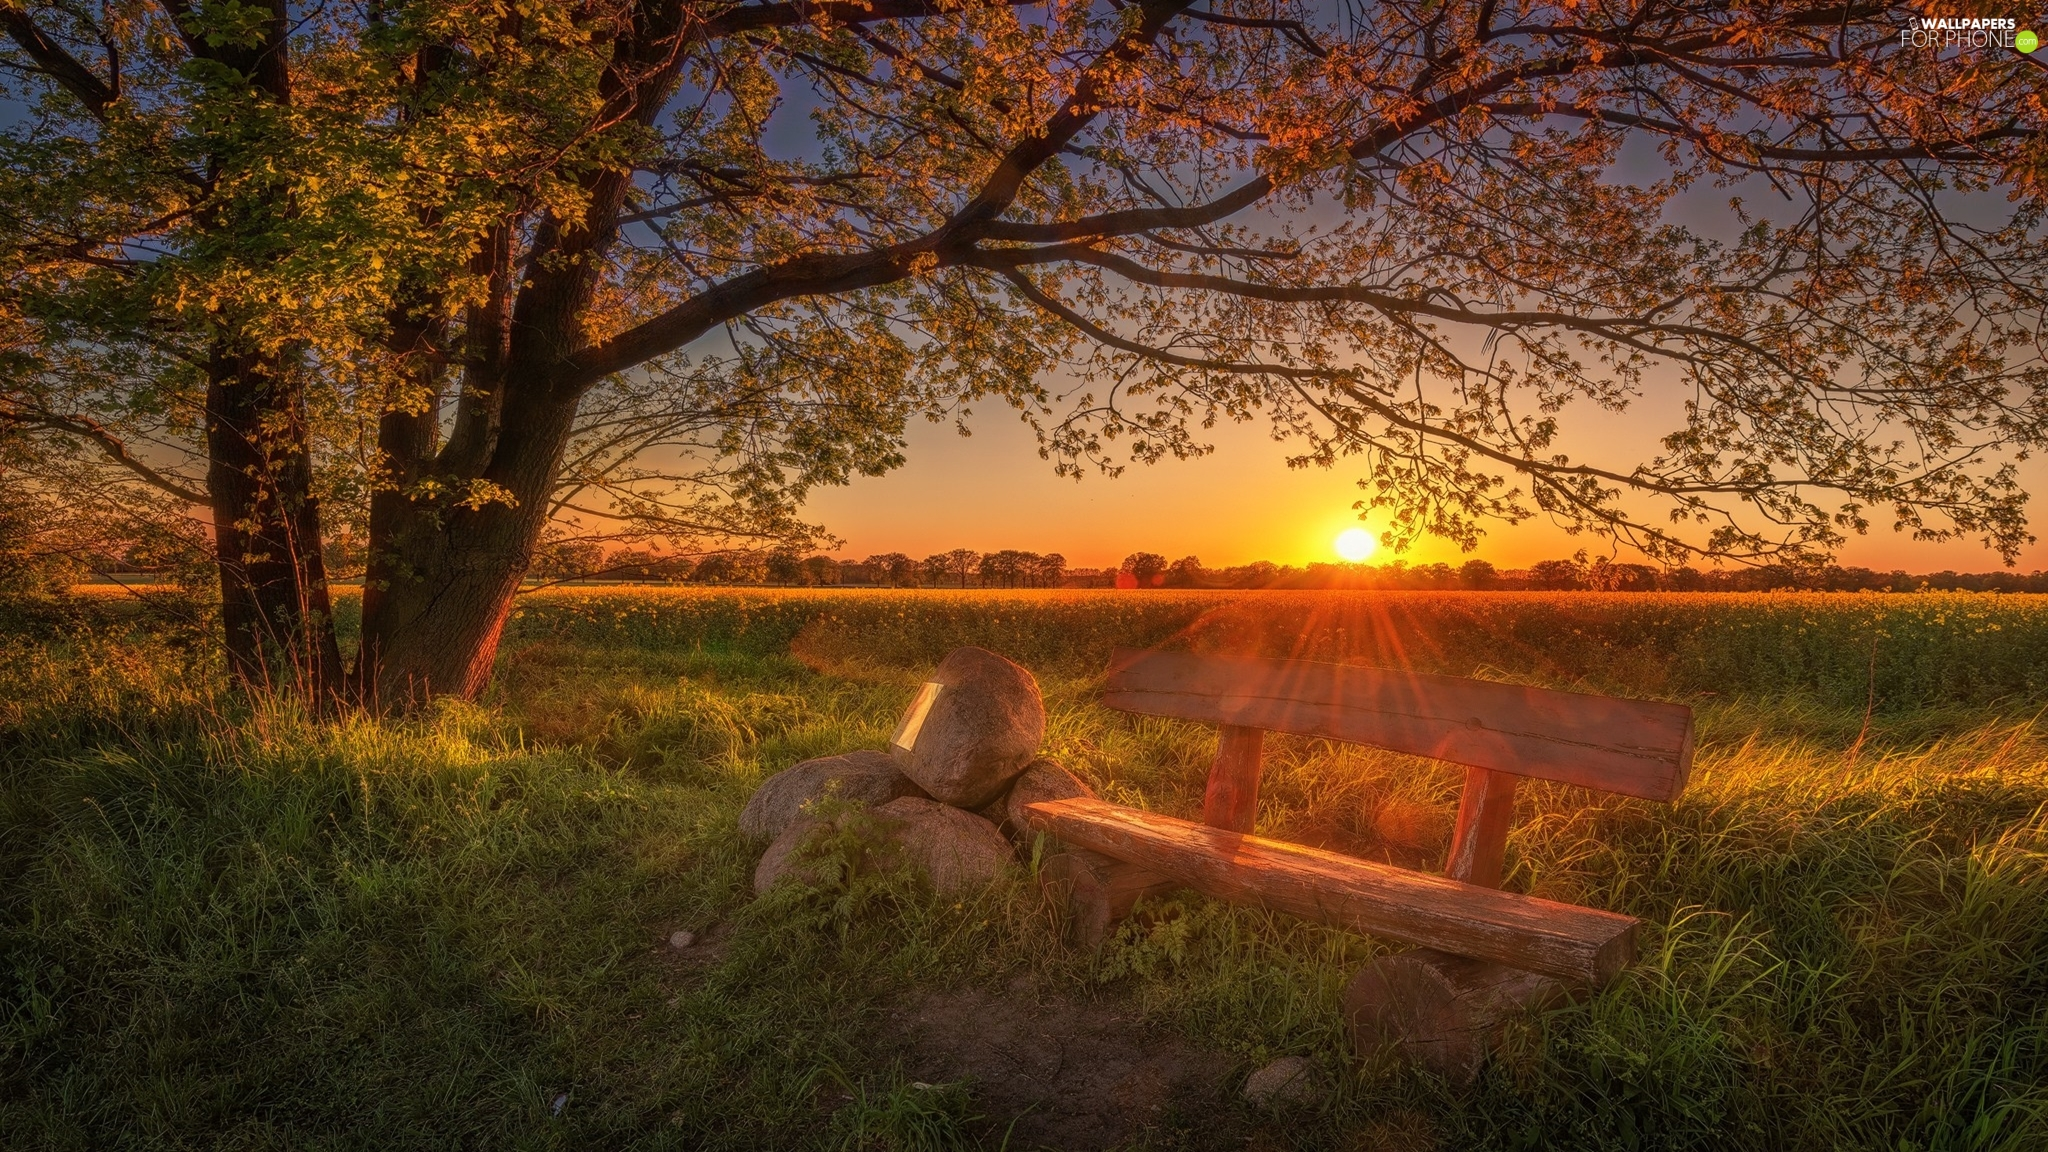 viewes, Bench, Stones, Field, Sunrise, trees